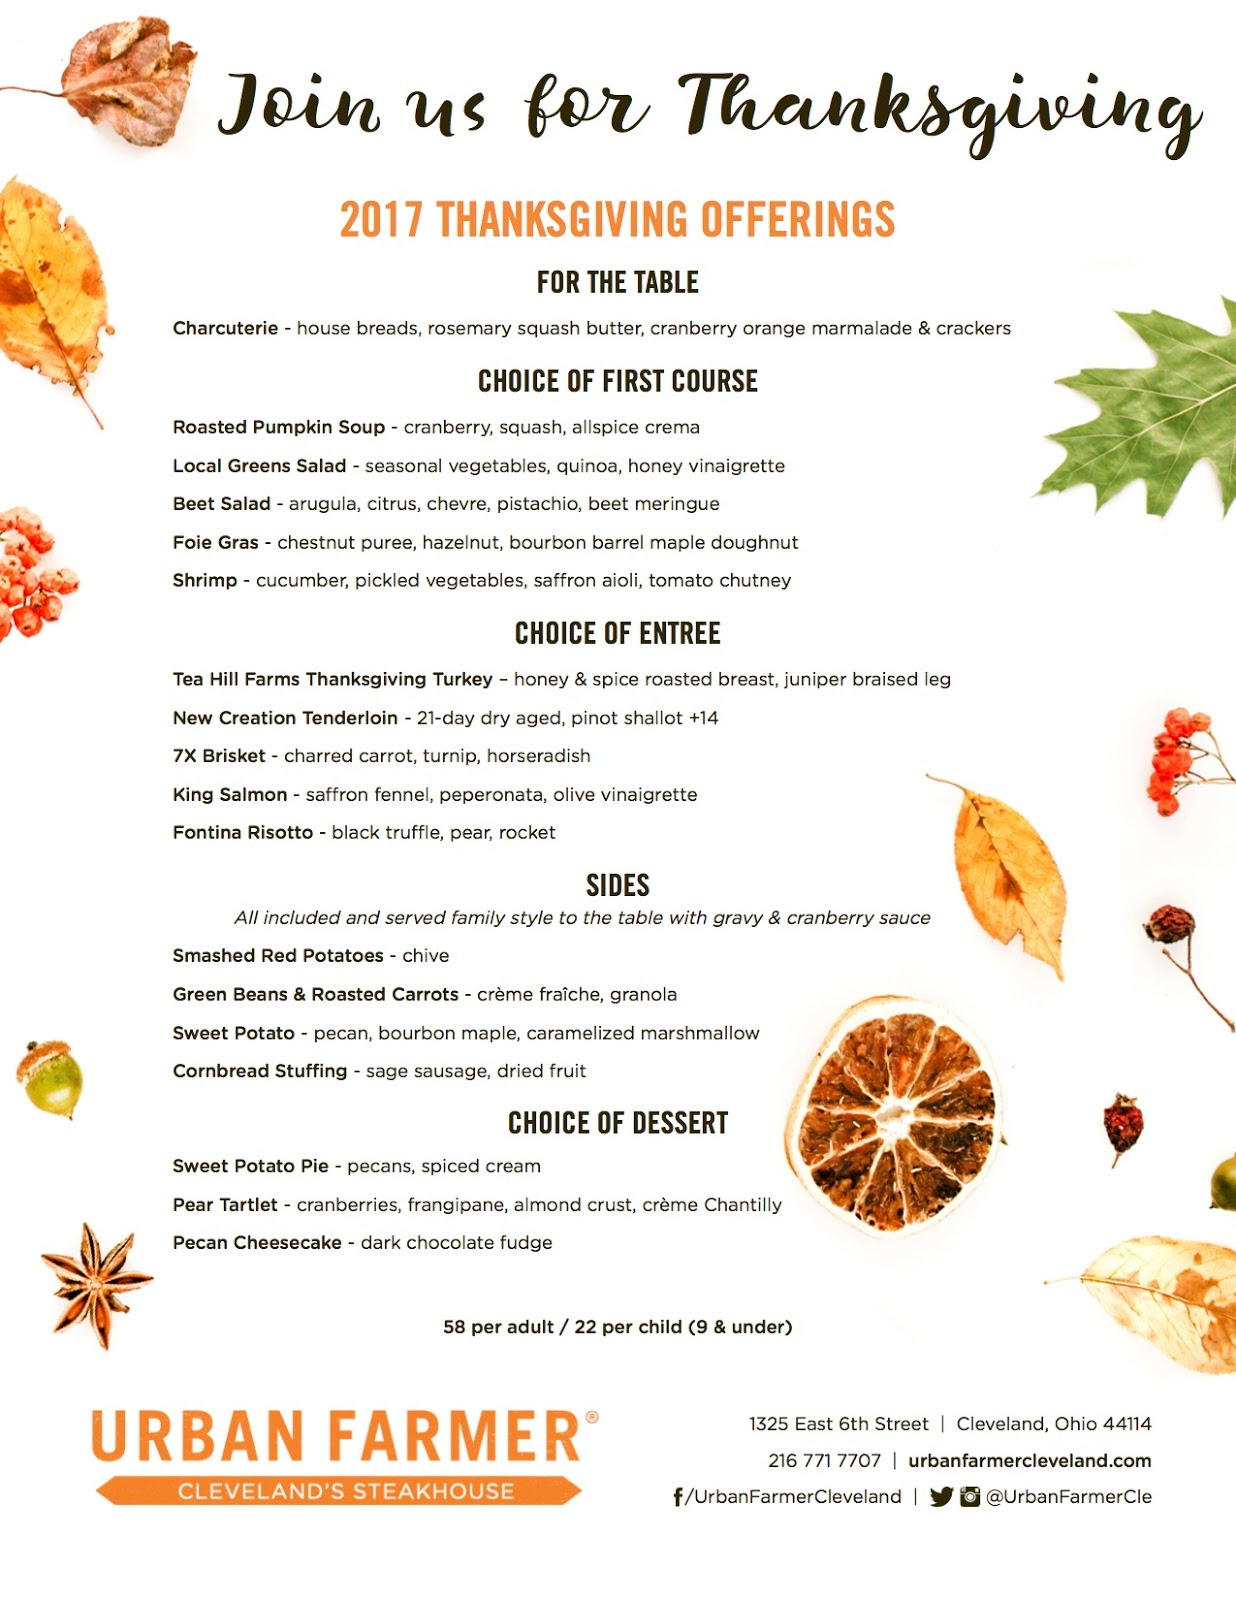 Eat drink cleveland turkey day the urban farmer way for Restaurants serving thanksgiving dinner near me 2017